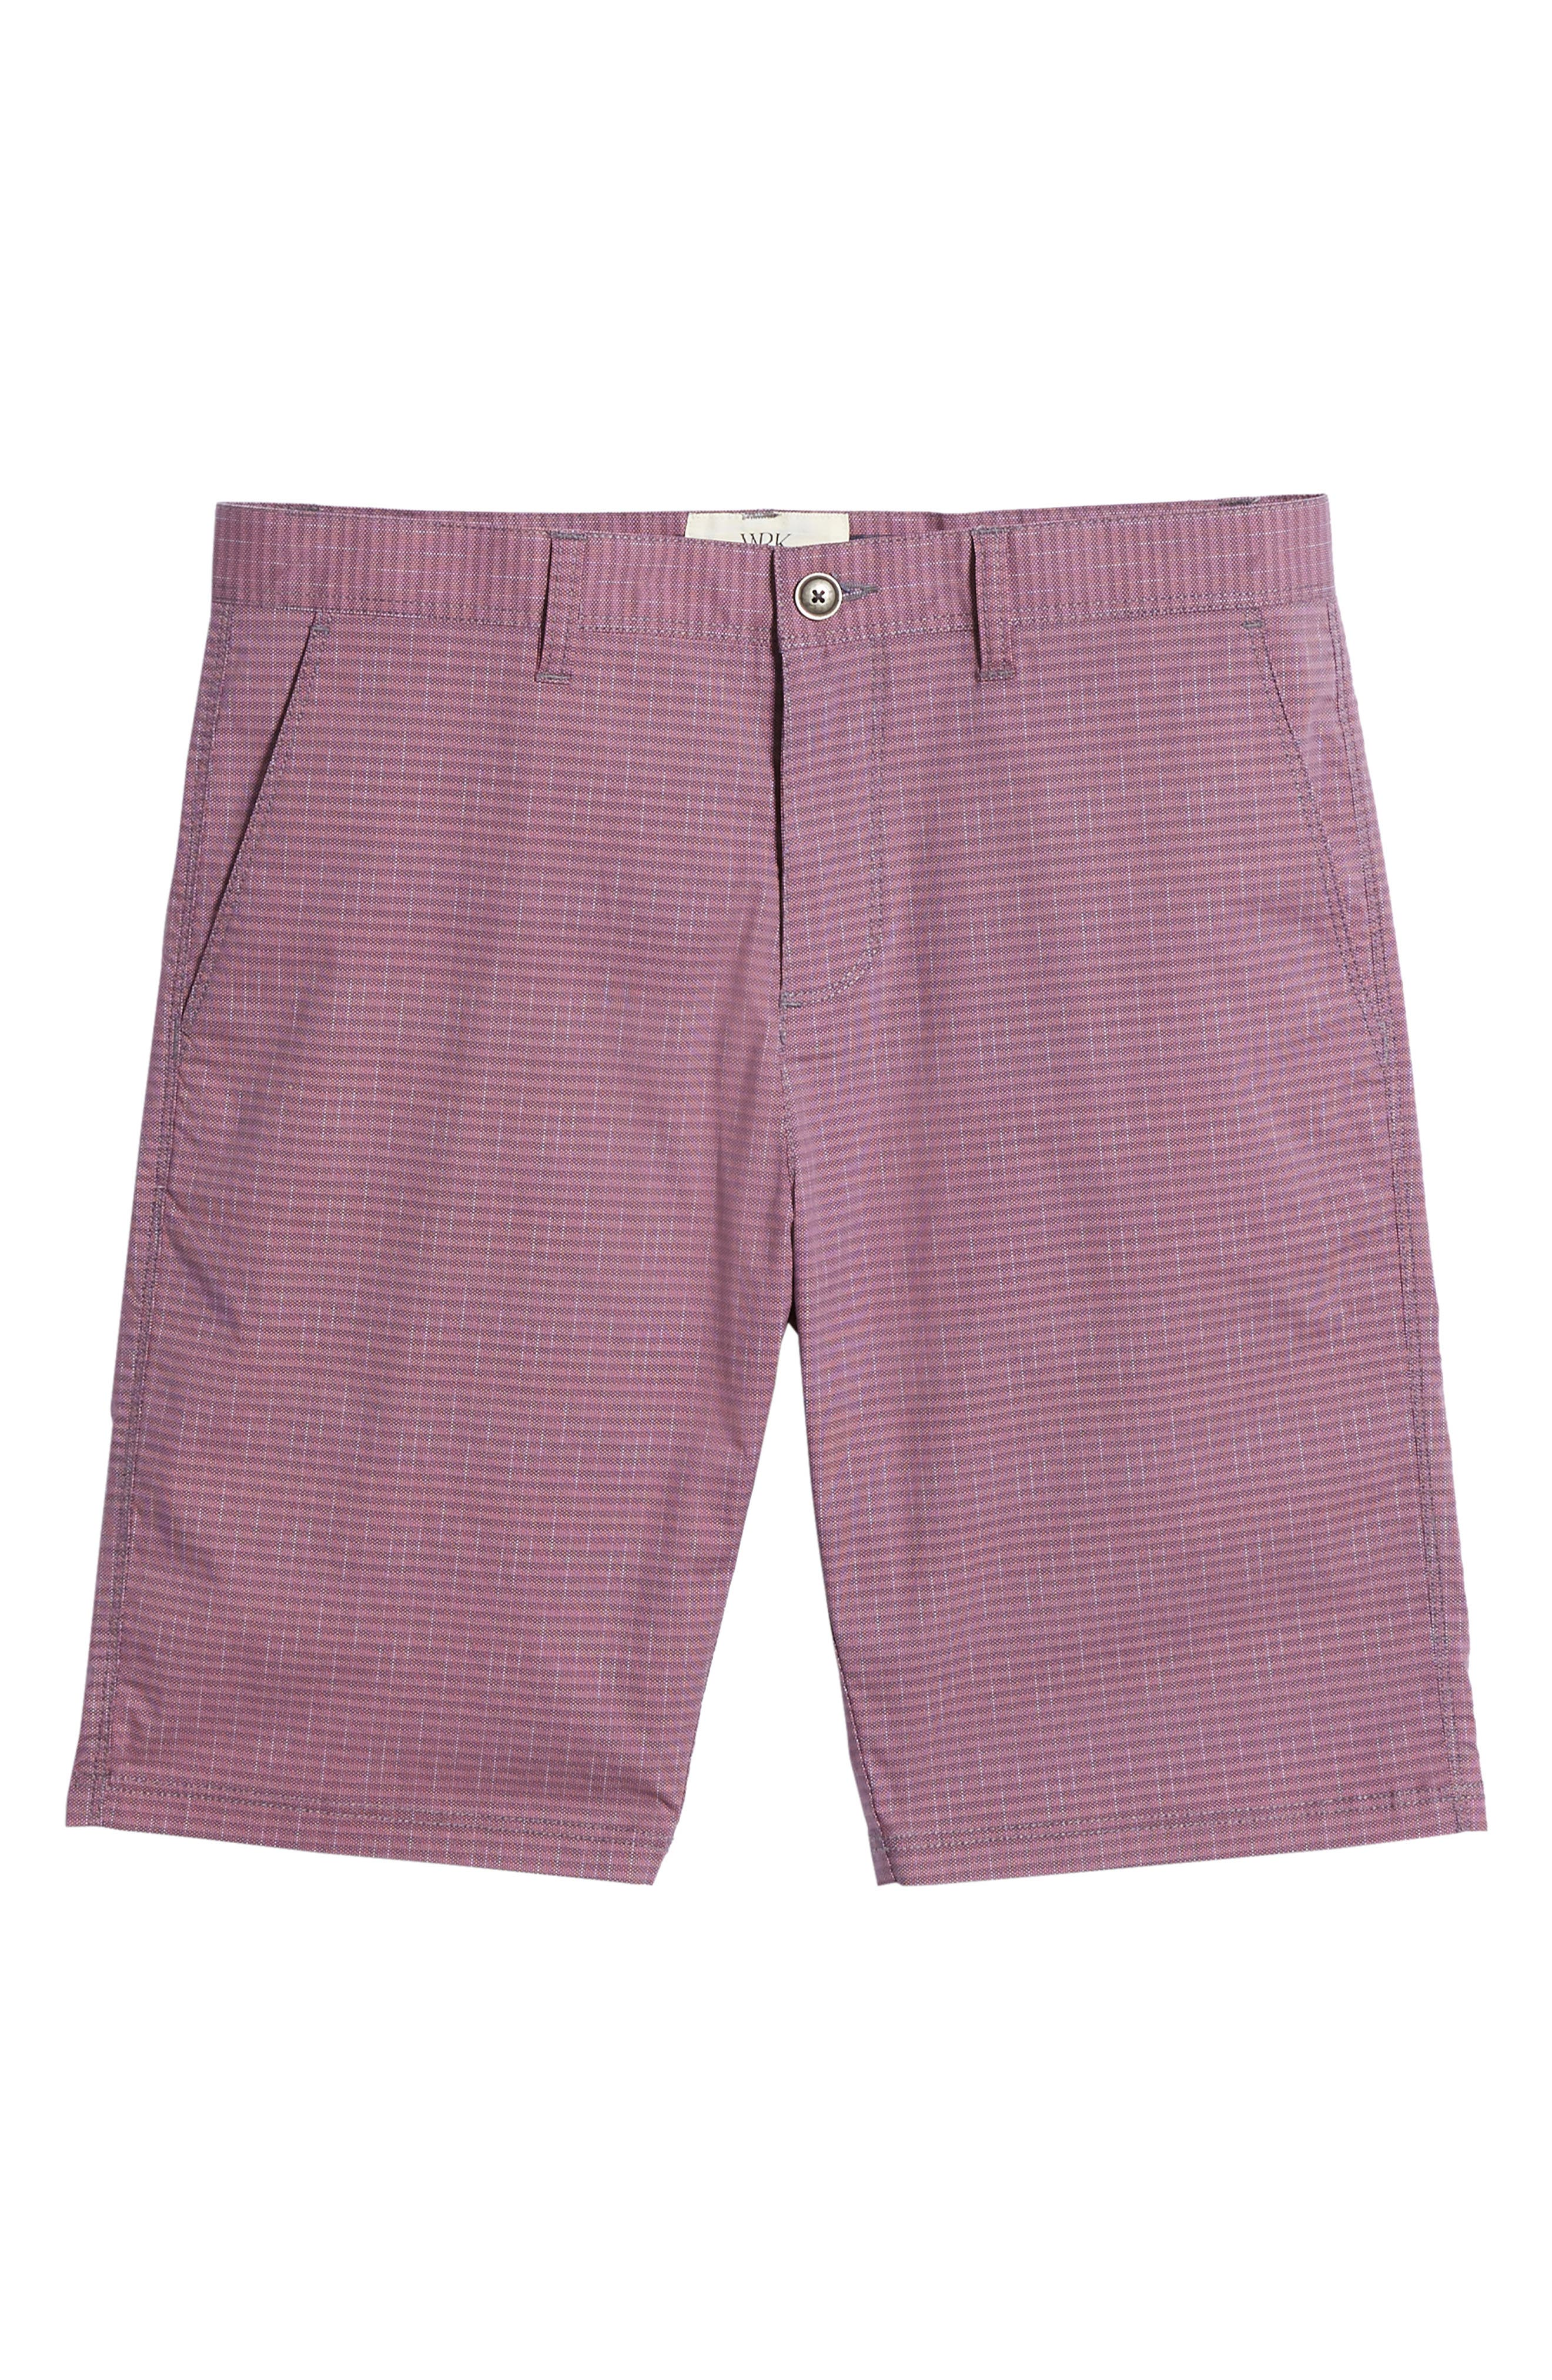 Textured Stretch Shorts,                             Alternate thumbnail 6, color,                             Pink